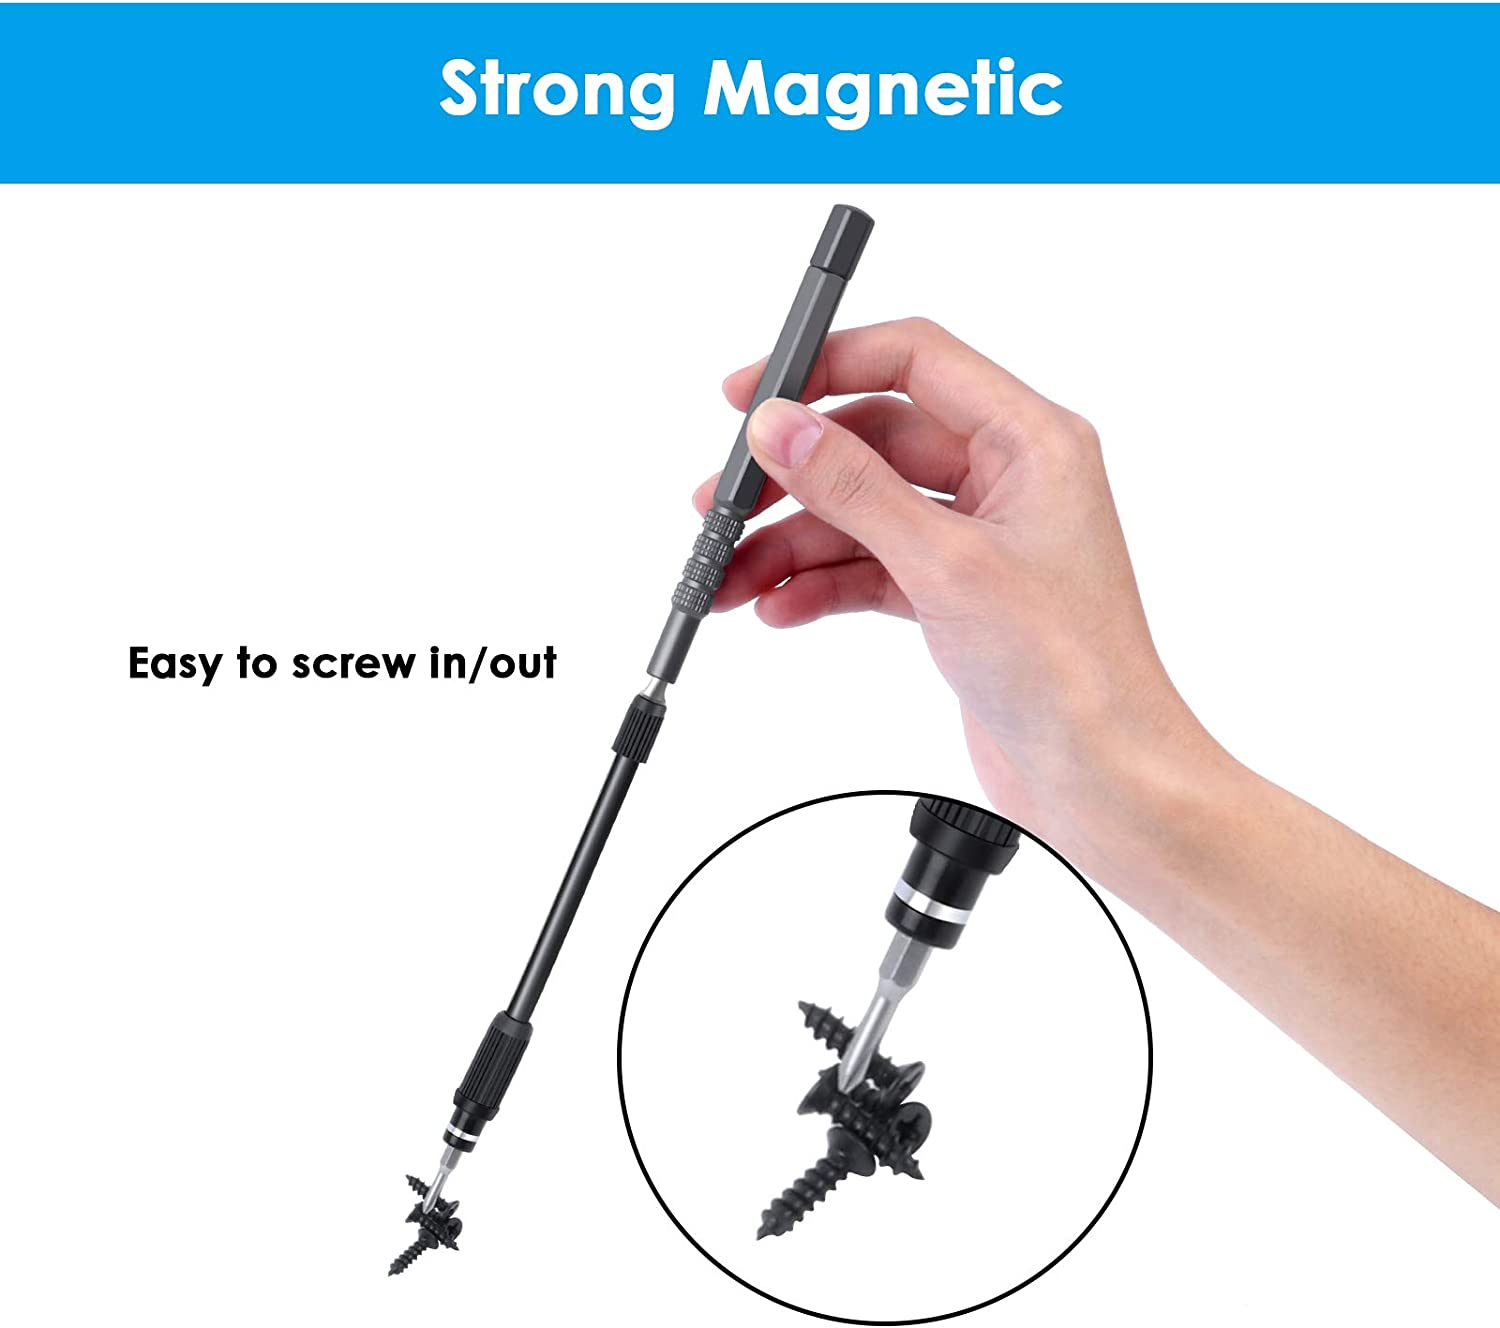 Professional Torx//Phillips//Slotted Screwdriver Sets Included Ottateat 50 in 1 Magnetic Screwdriver Kit Precision Screwdriver Set Small Screw Driver for Electronics Repair